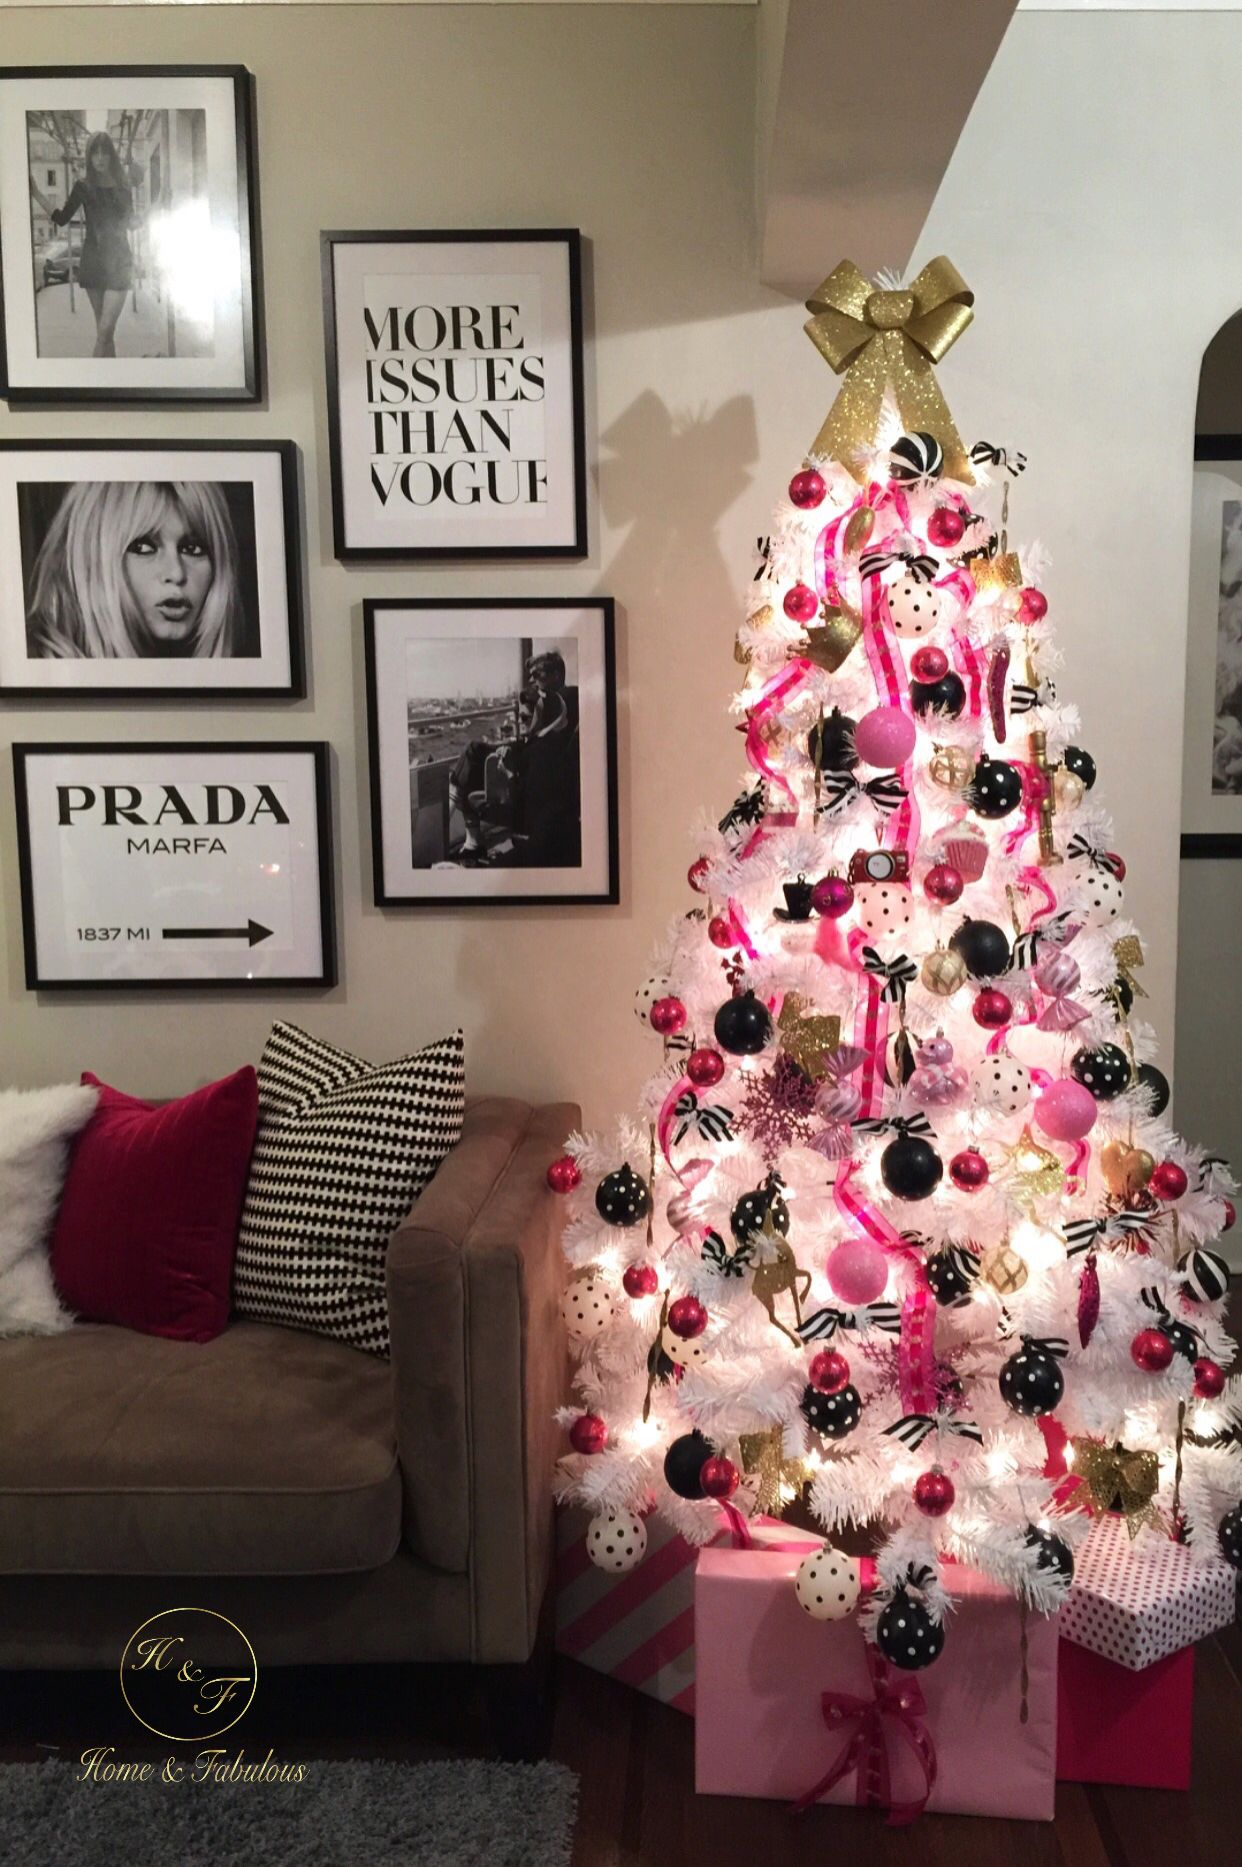 die besten 25 girly christmas tree ideen auf pinterest wei e weihnachtsb ume weihnachtsbaum. Black Bedroom Furniture Sets. Home Design Ideas